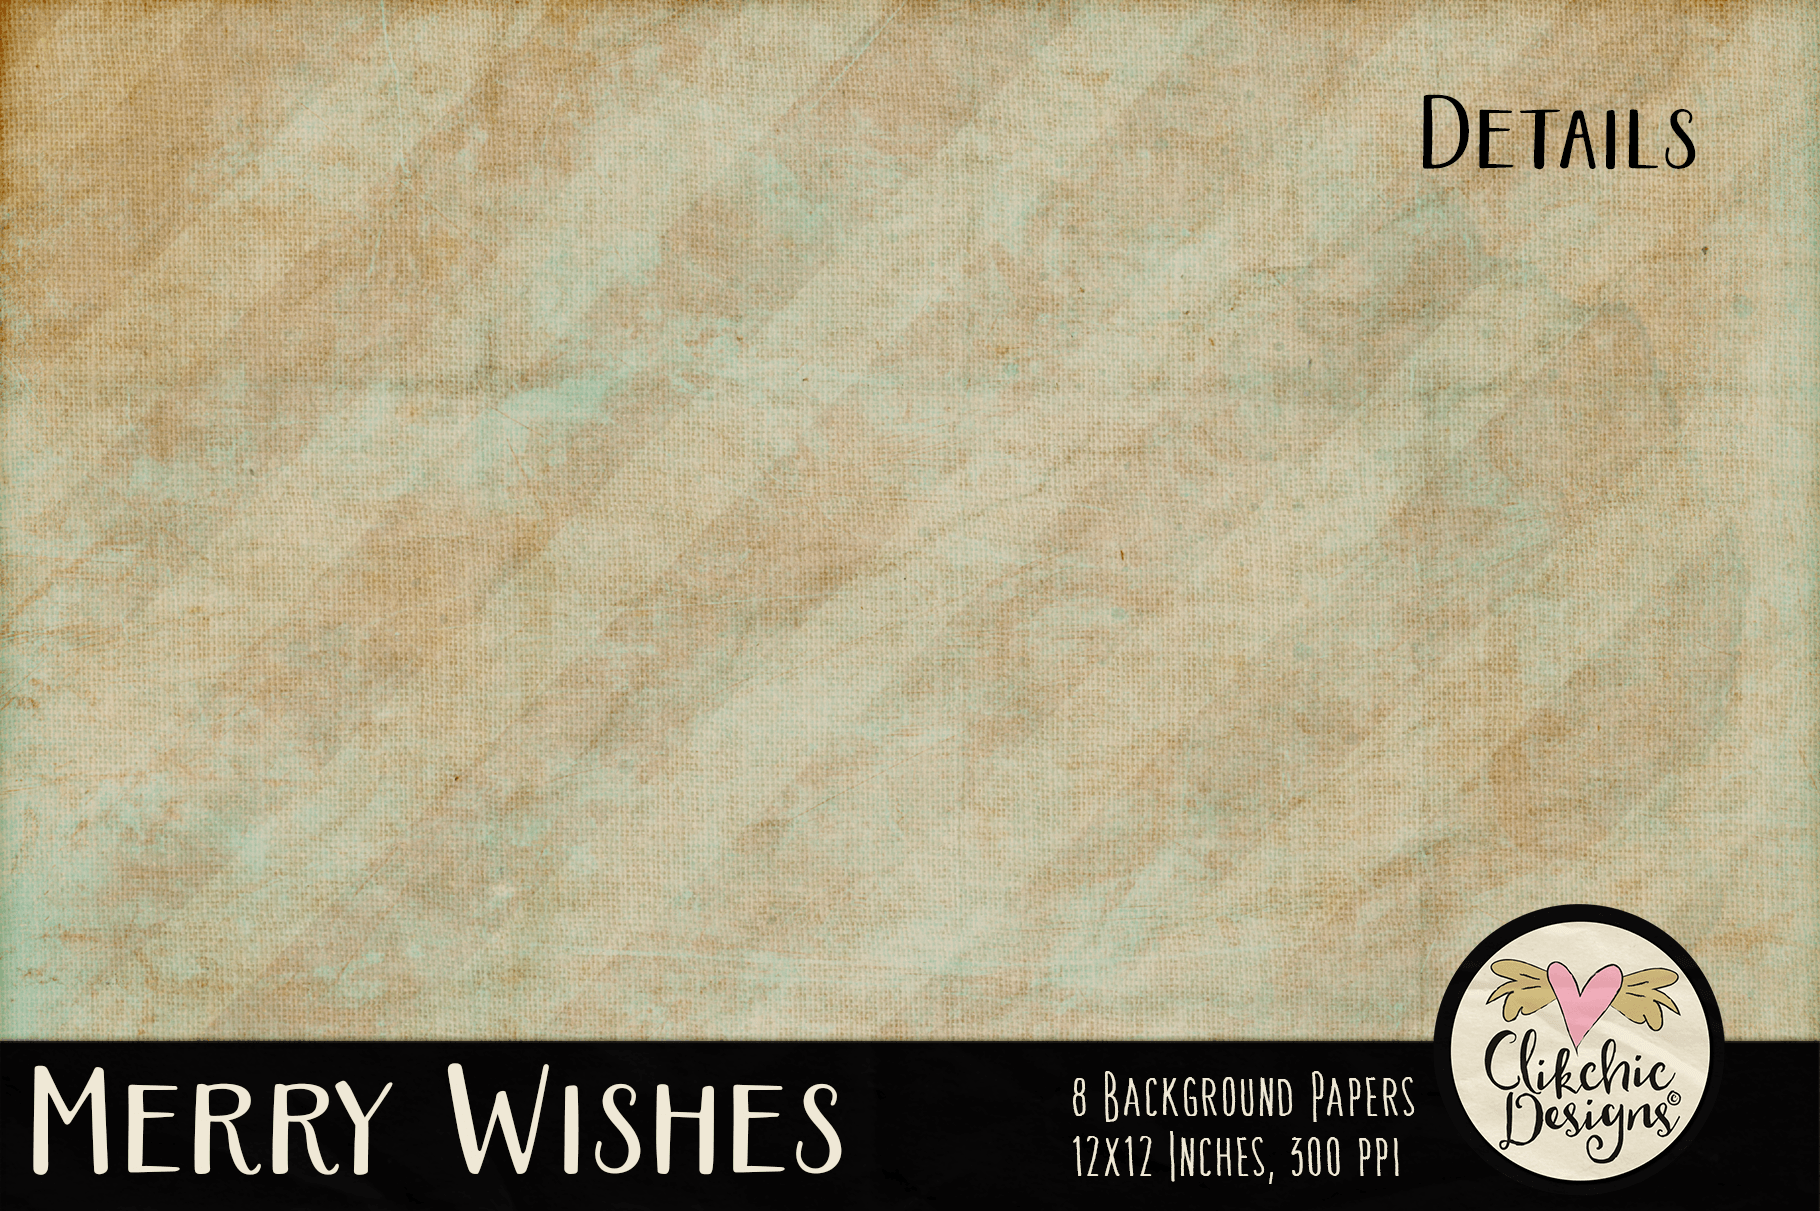 Christmas Backgrounds - Merry Wishes Digital Papers Textures example image 5